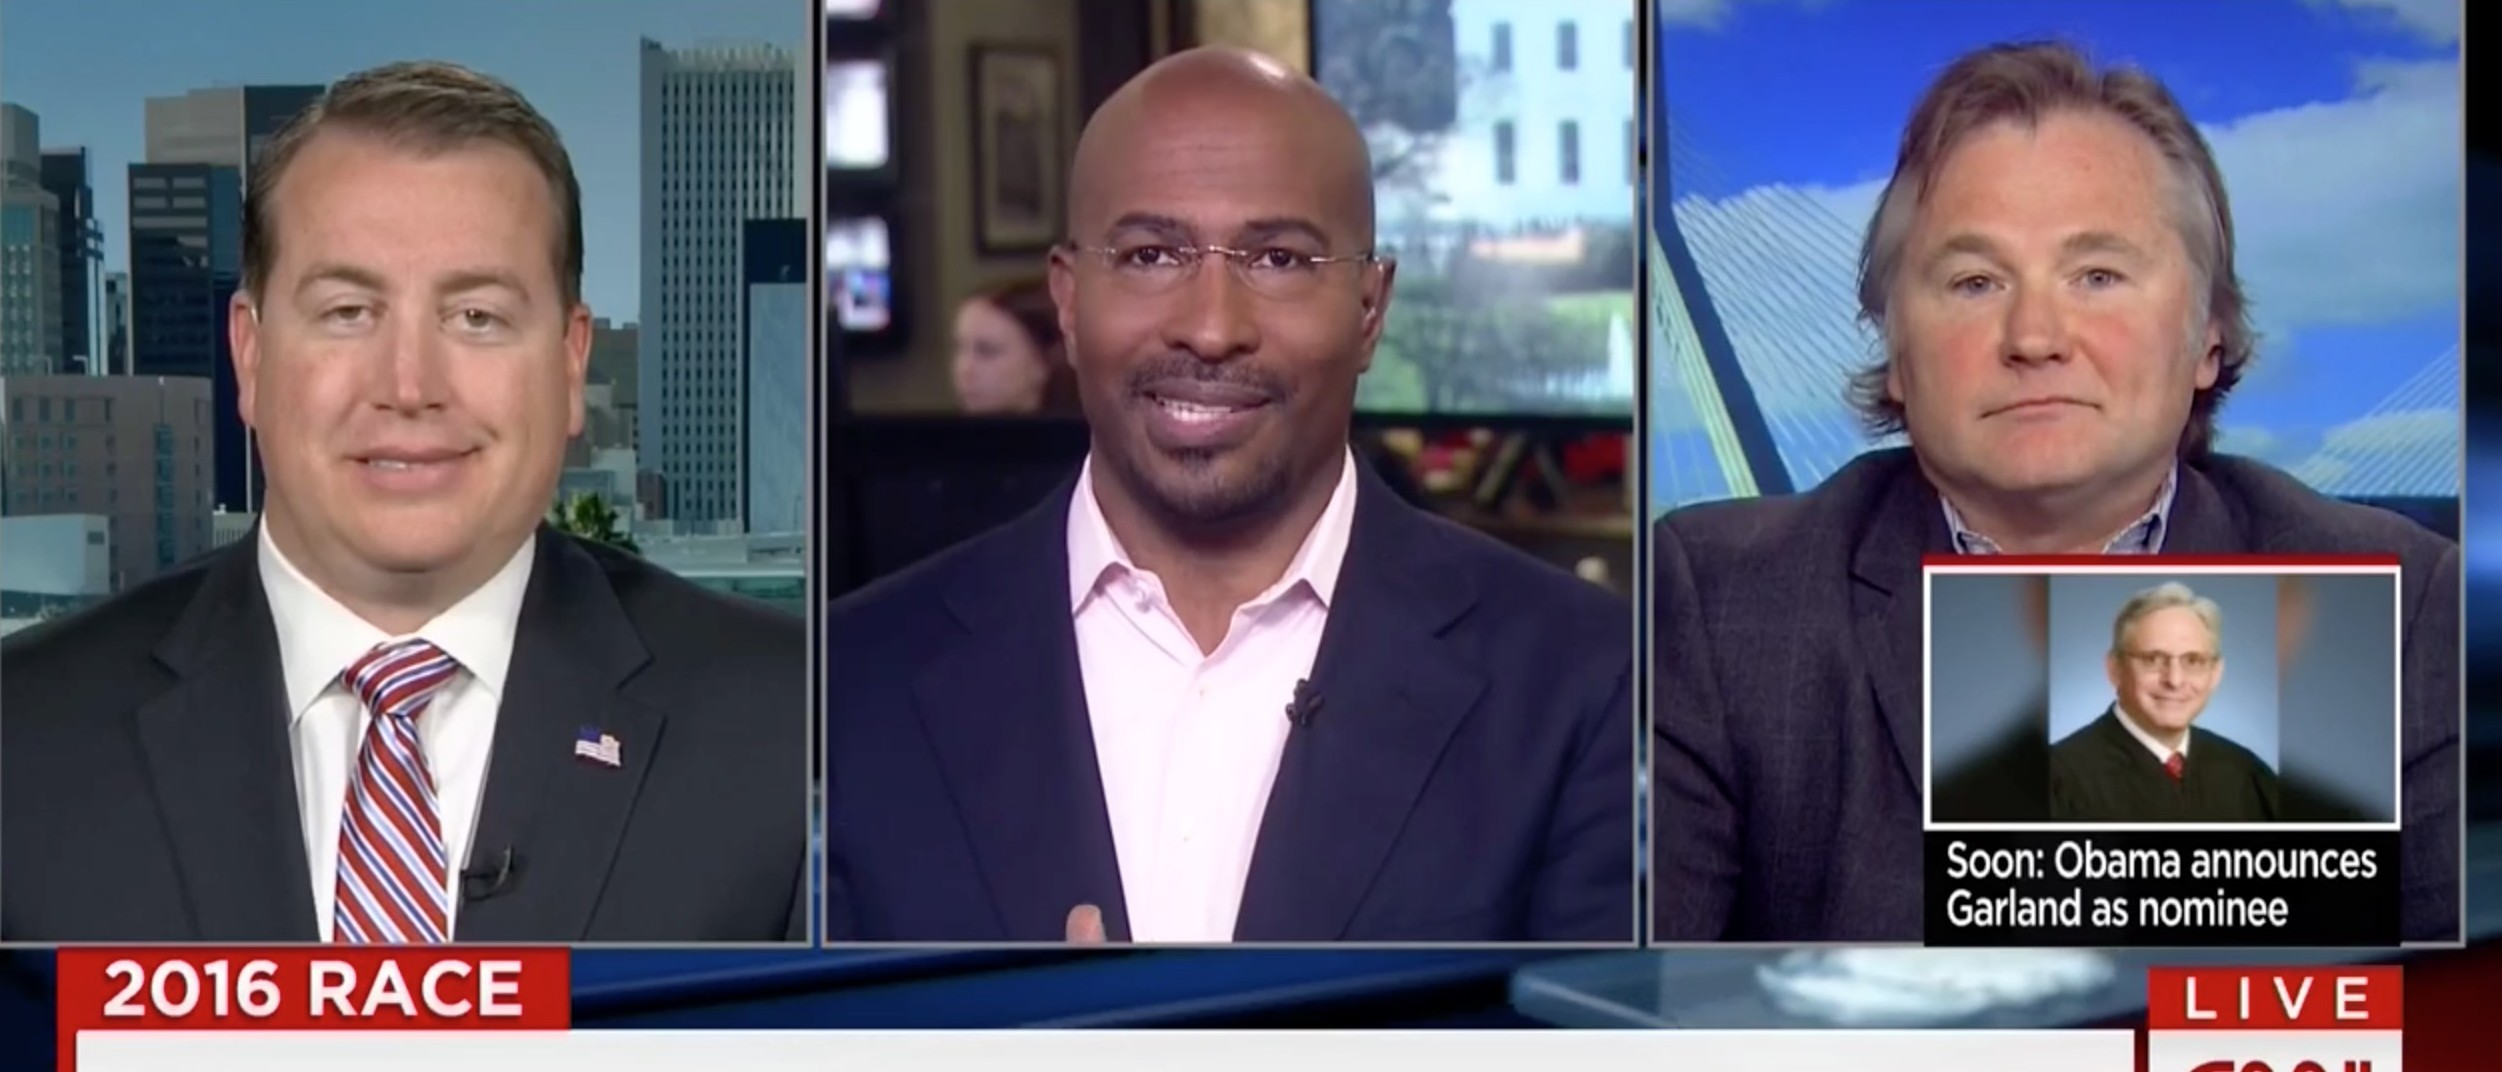 Van Jones, Screen Shot CNN, 3-16-2016